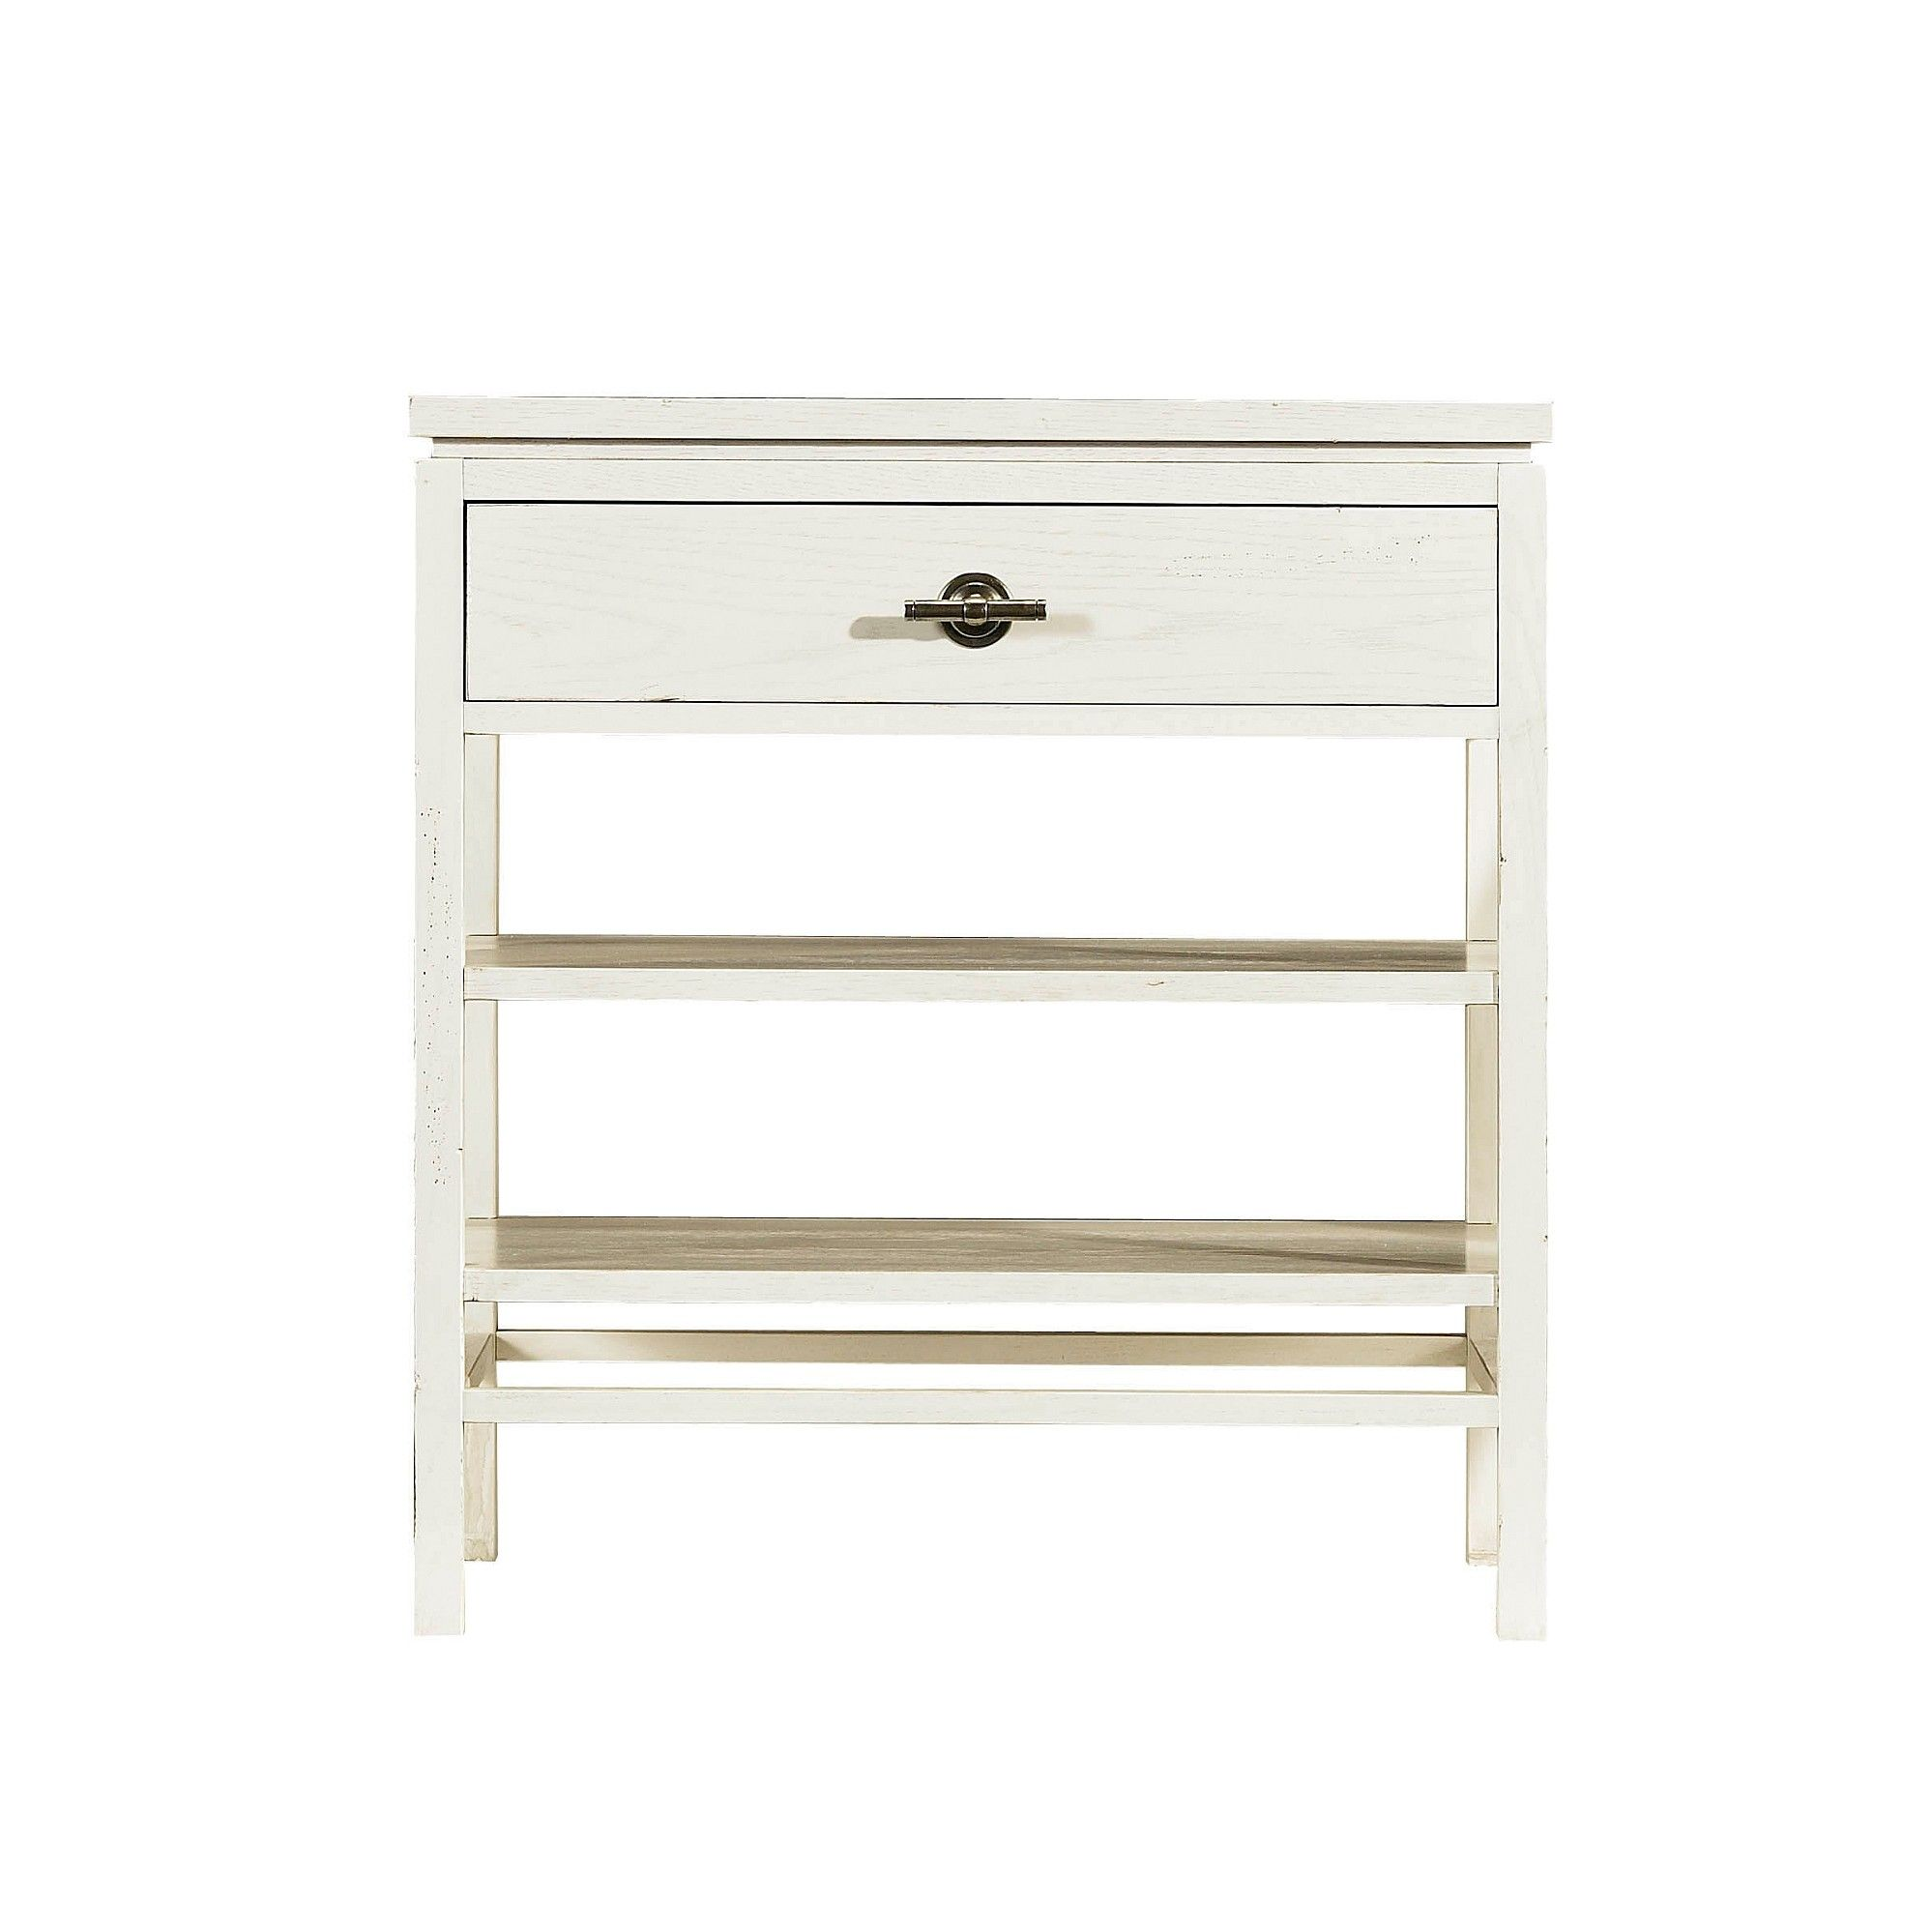 Coastal Living™ by Stanley Furniture Resort Tranquility 1 Drawer Nightstand & Reviews | Wayfair